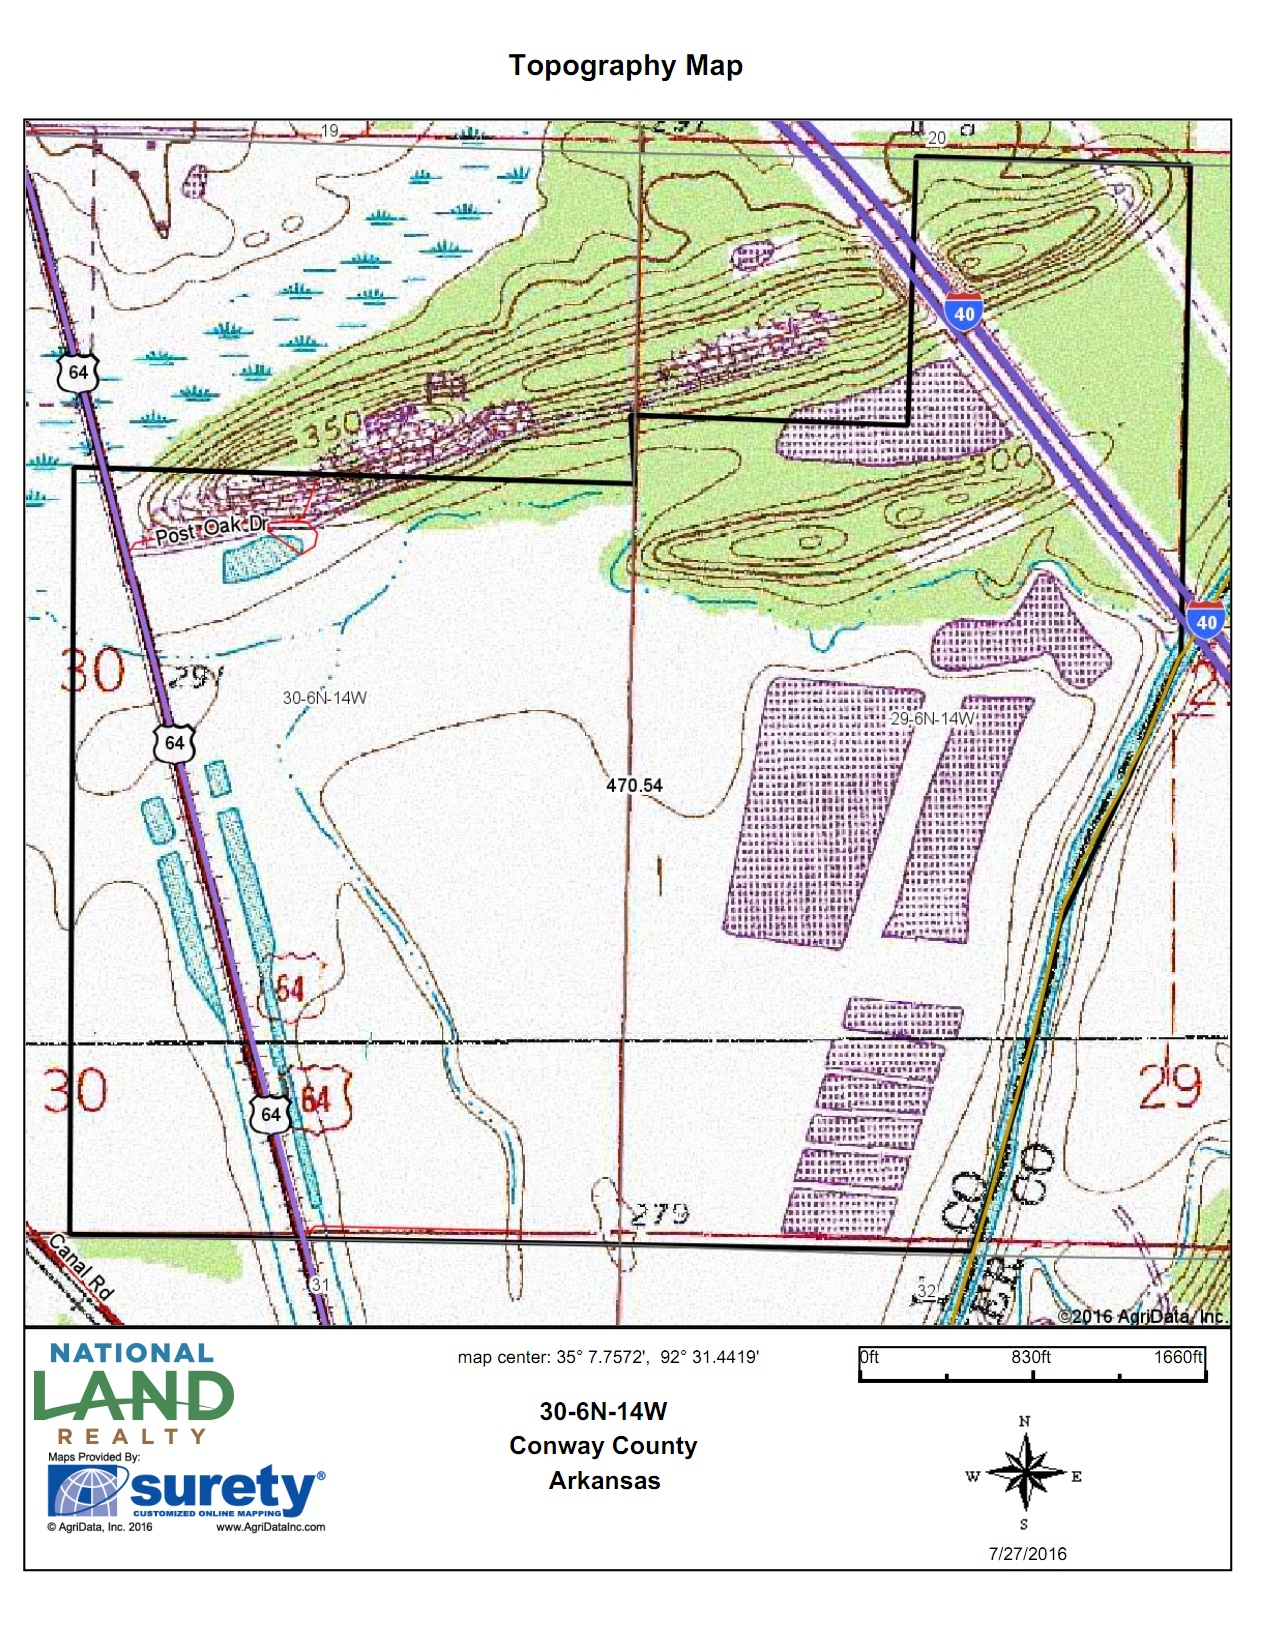 Topo Map<br>(Doc 4 of 7)